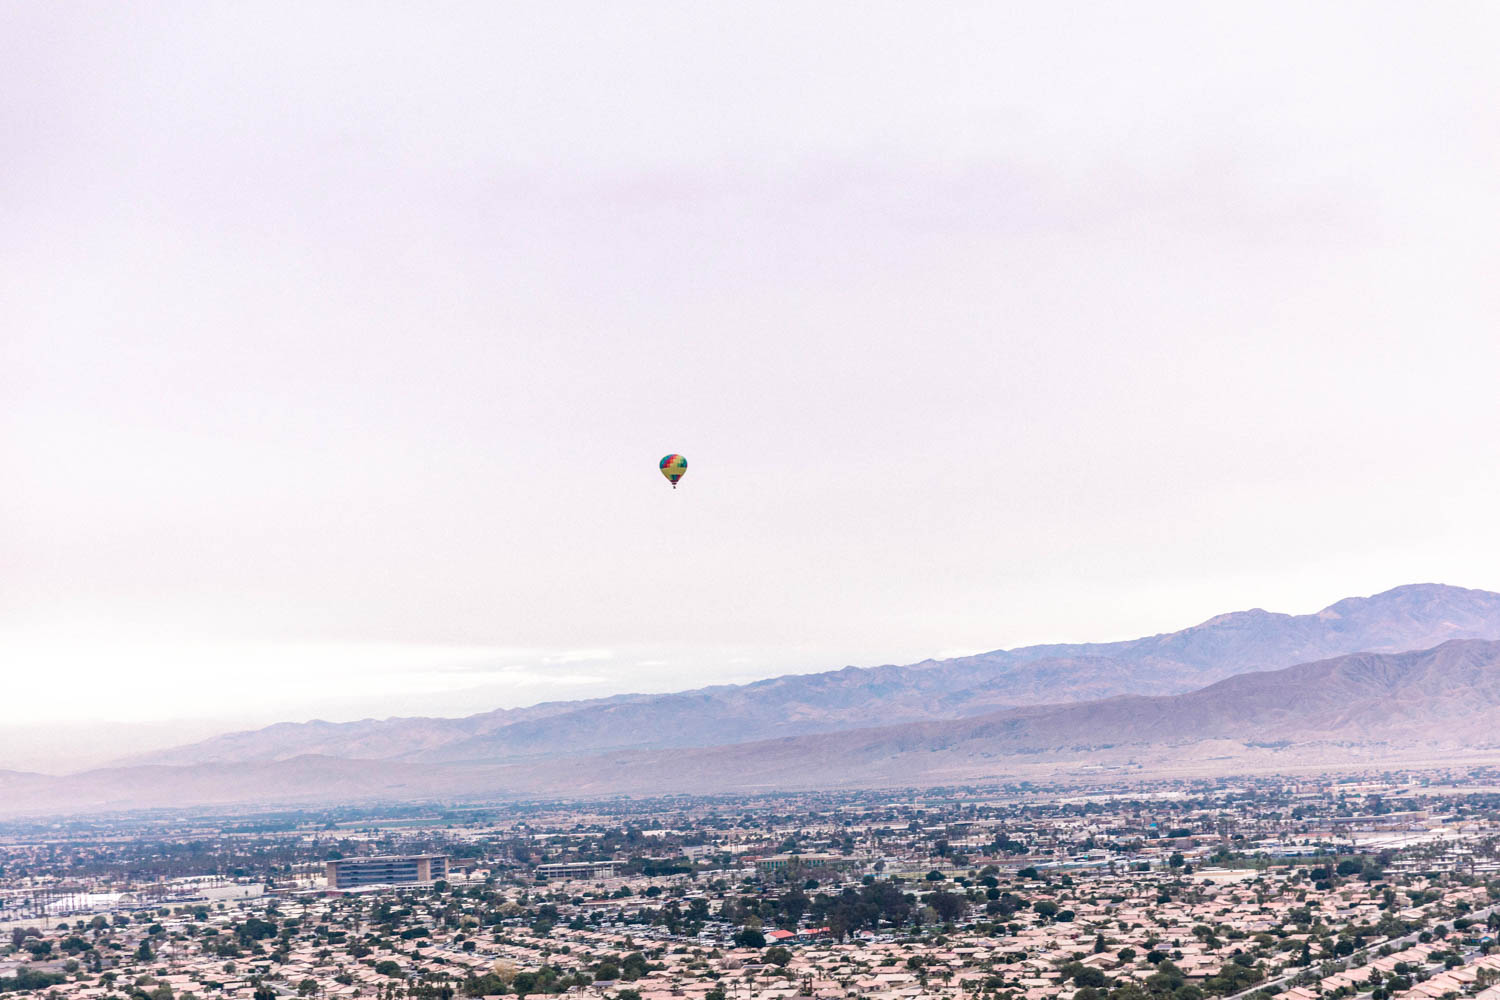 palm_springs_hot_air_balloon_proposal_03.jpg